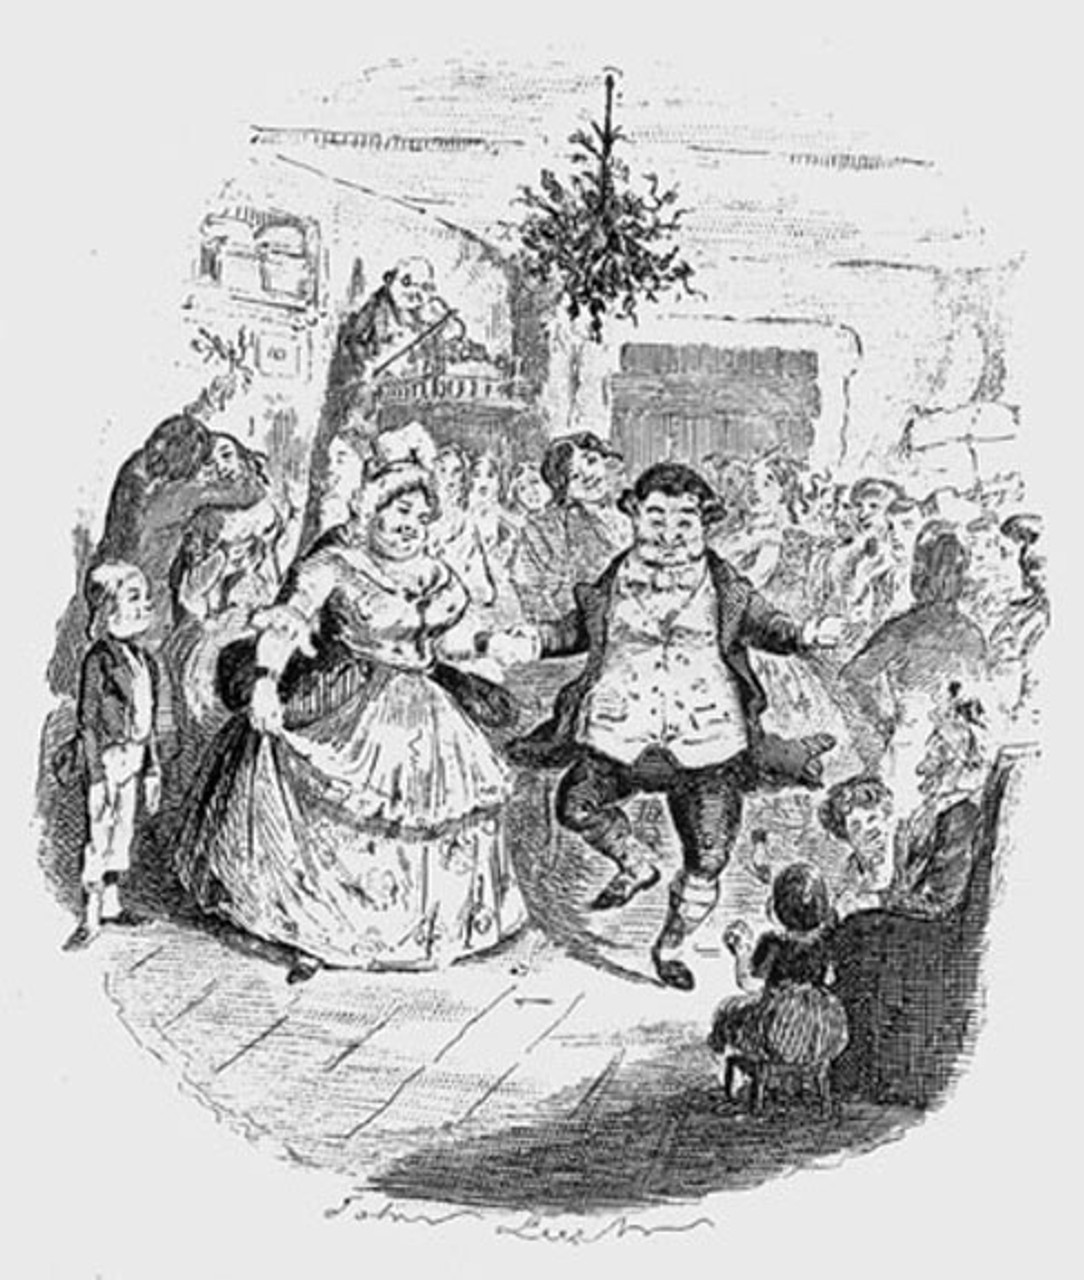 Mr. Fezziwig's ball, an original illustration from A Christmas Carol by Charles Dickens